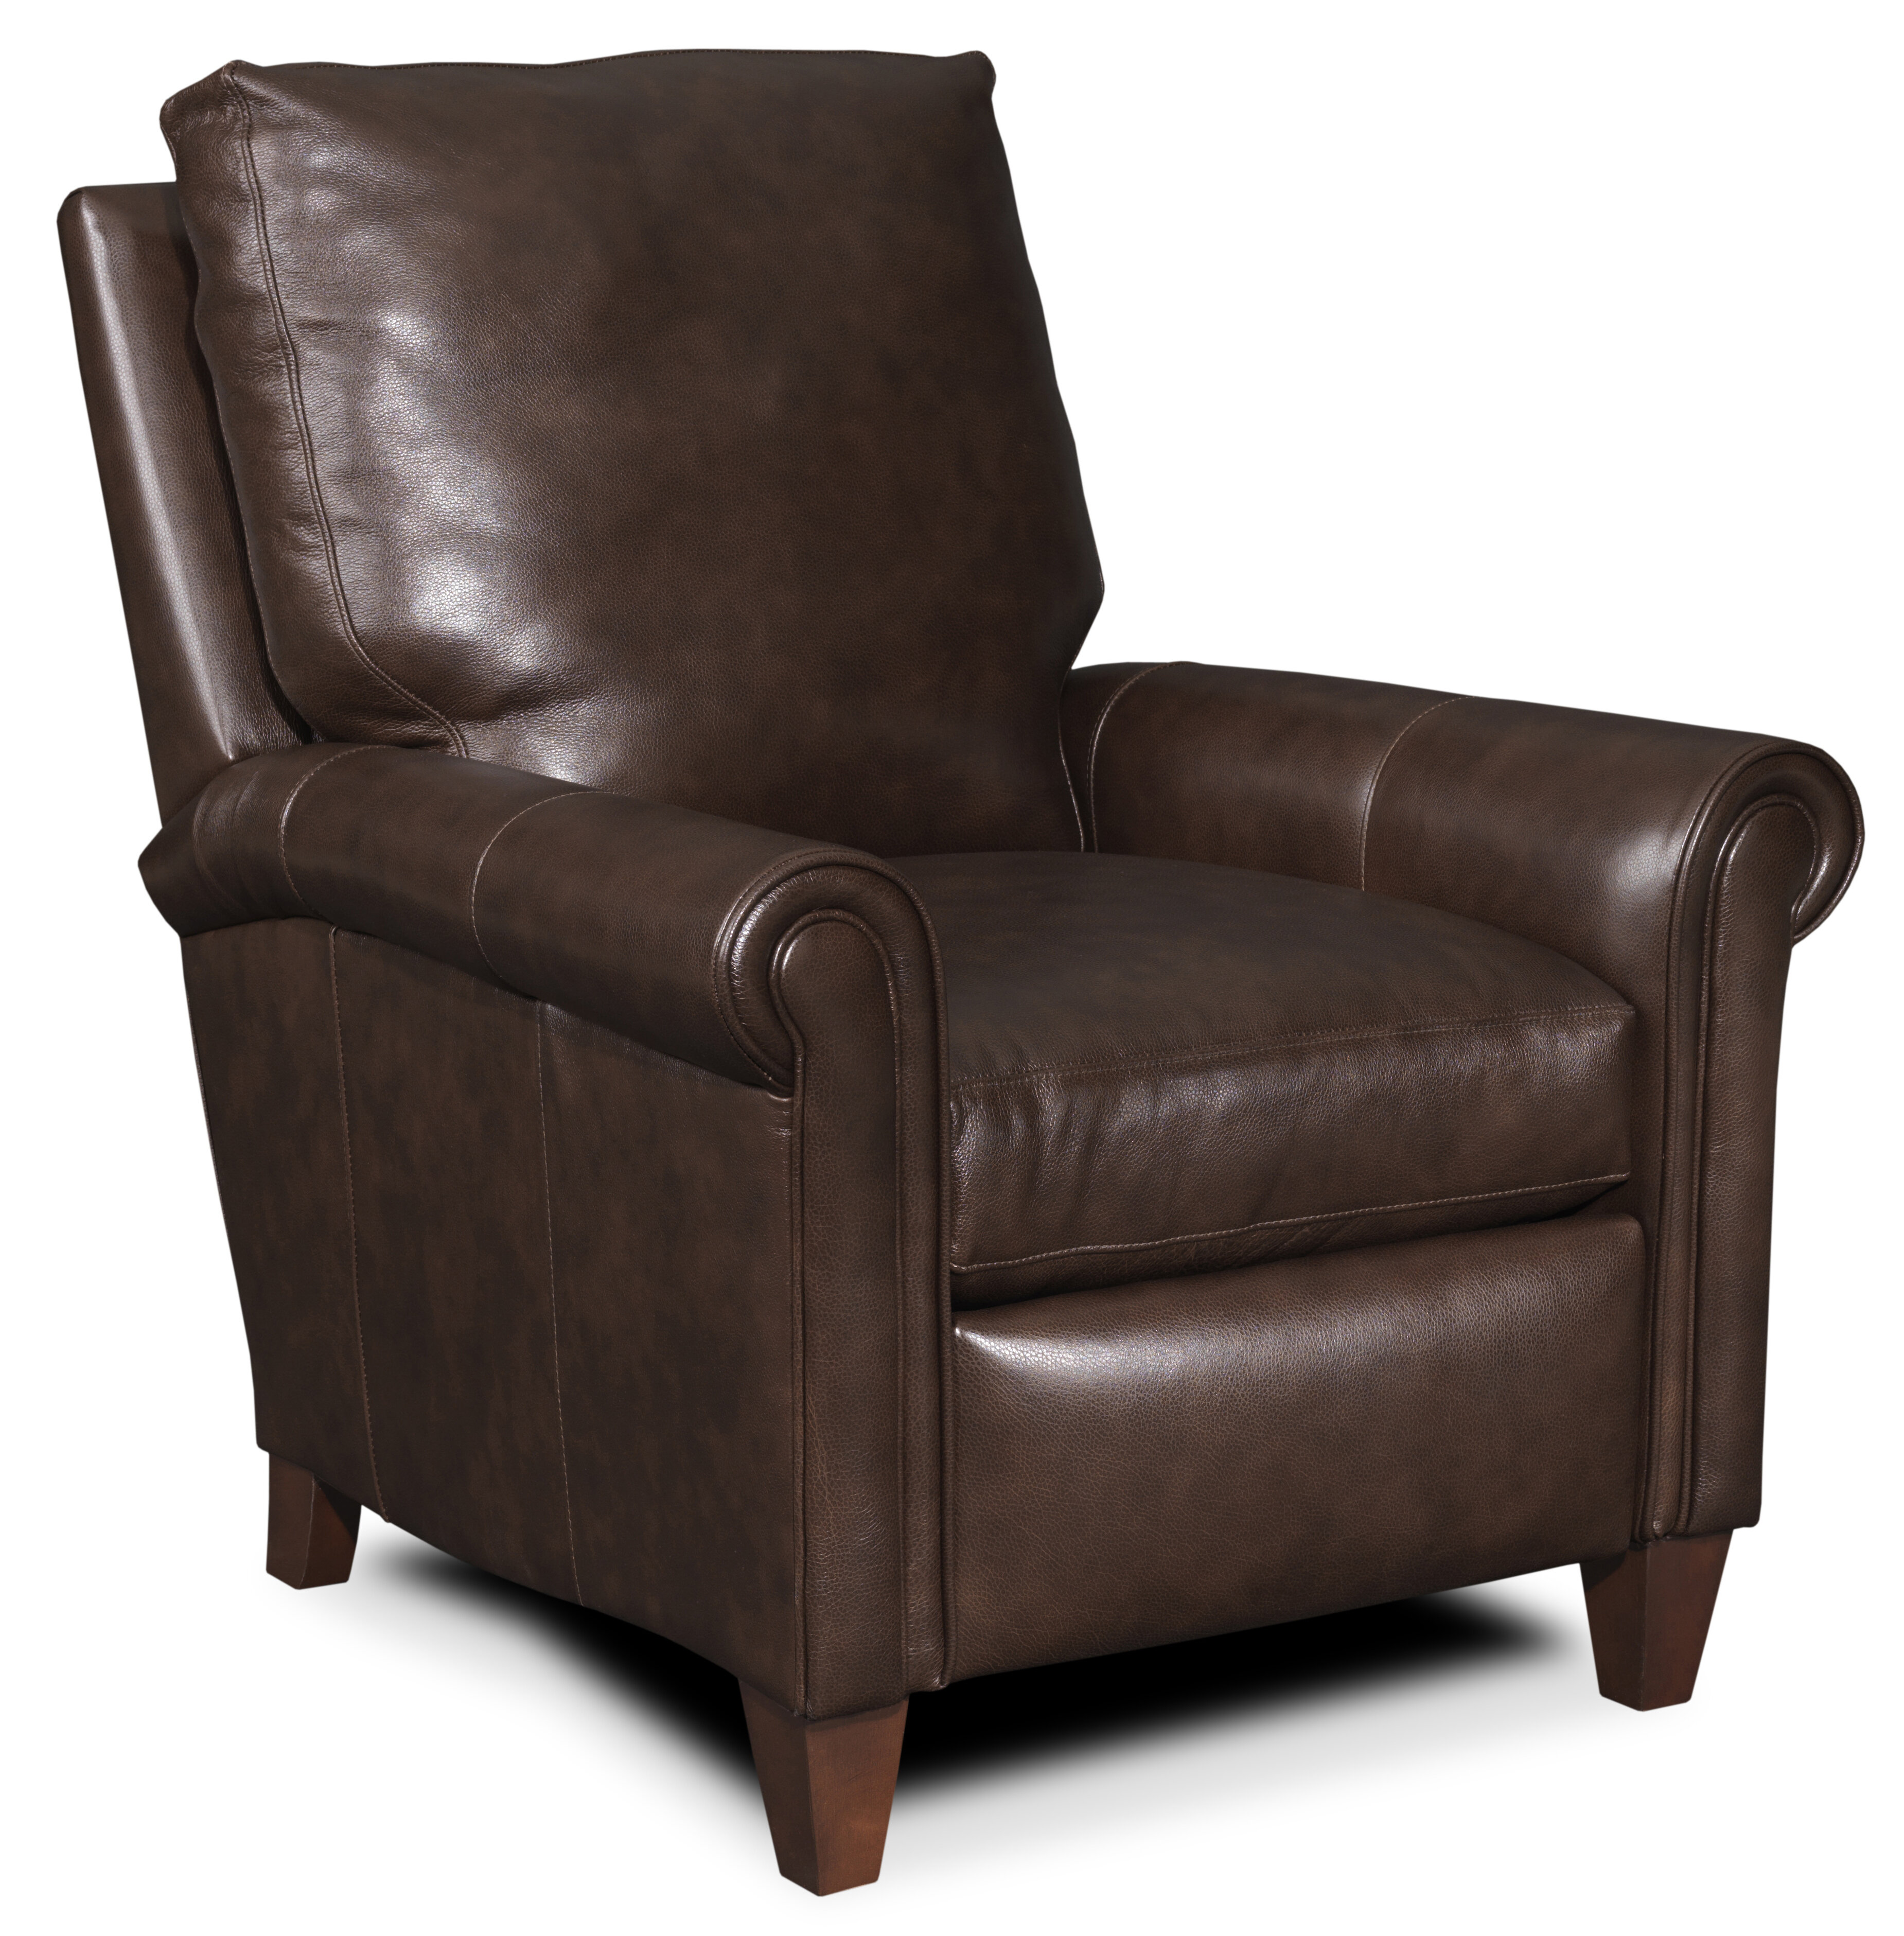 Haskins 3 Way Leather Manual Recliner. By Bradington Young